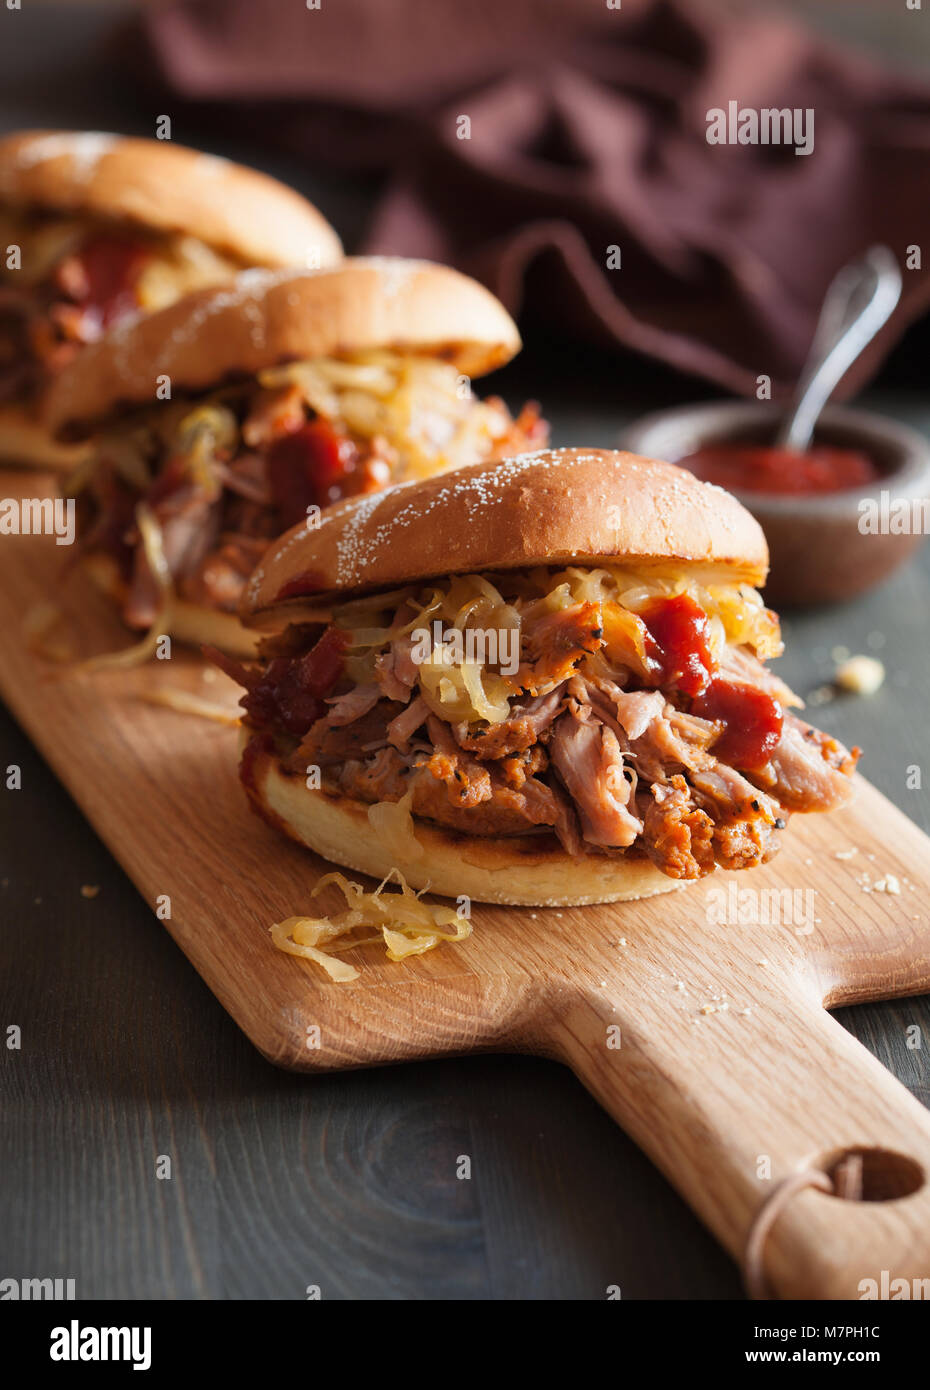 homemade pulled pork burger with caramelized onion and bbq sauce - Stock Image